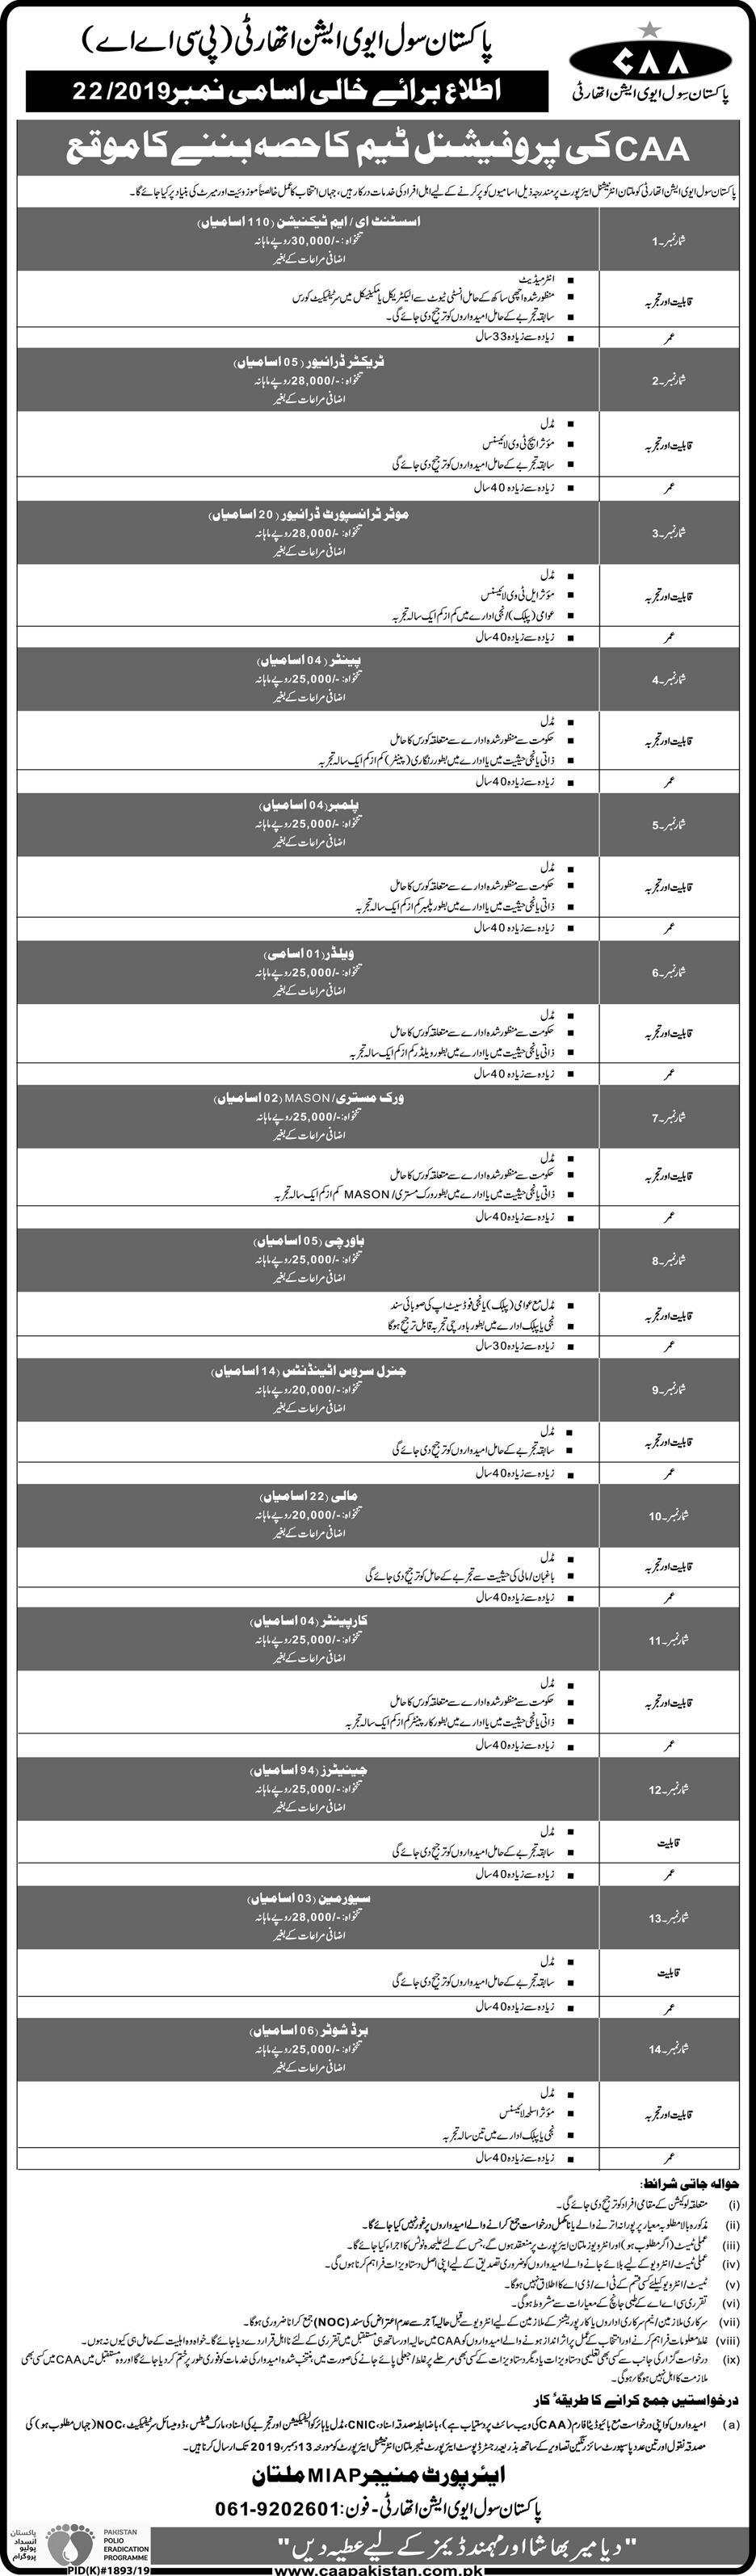 Civil Aviation Authority Multan International Airport Jobs